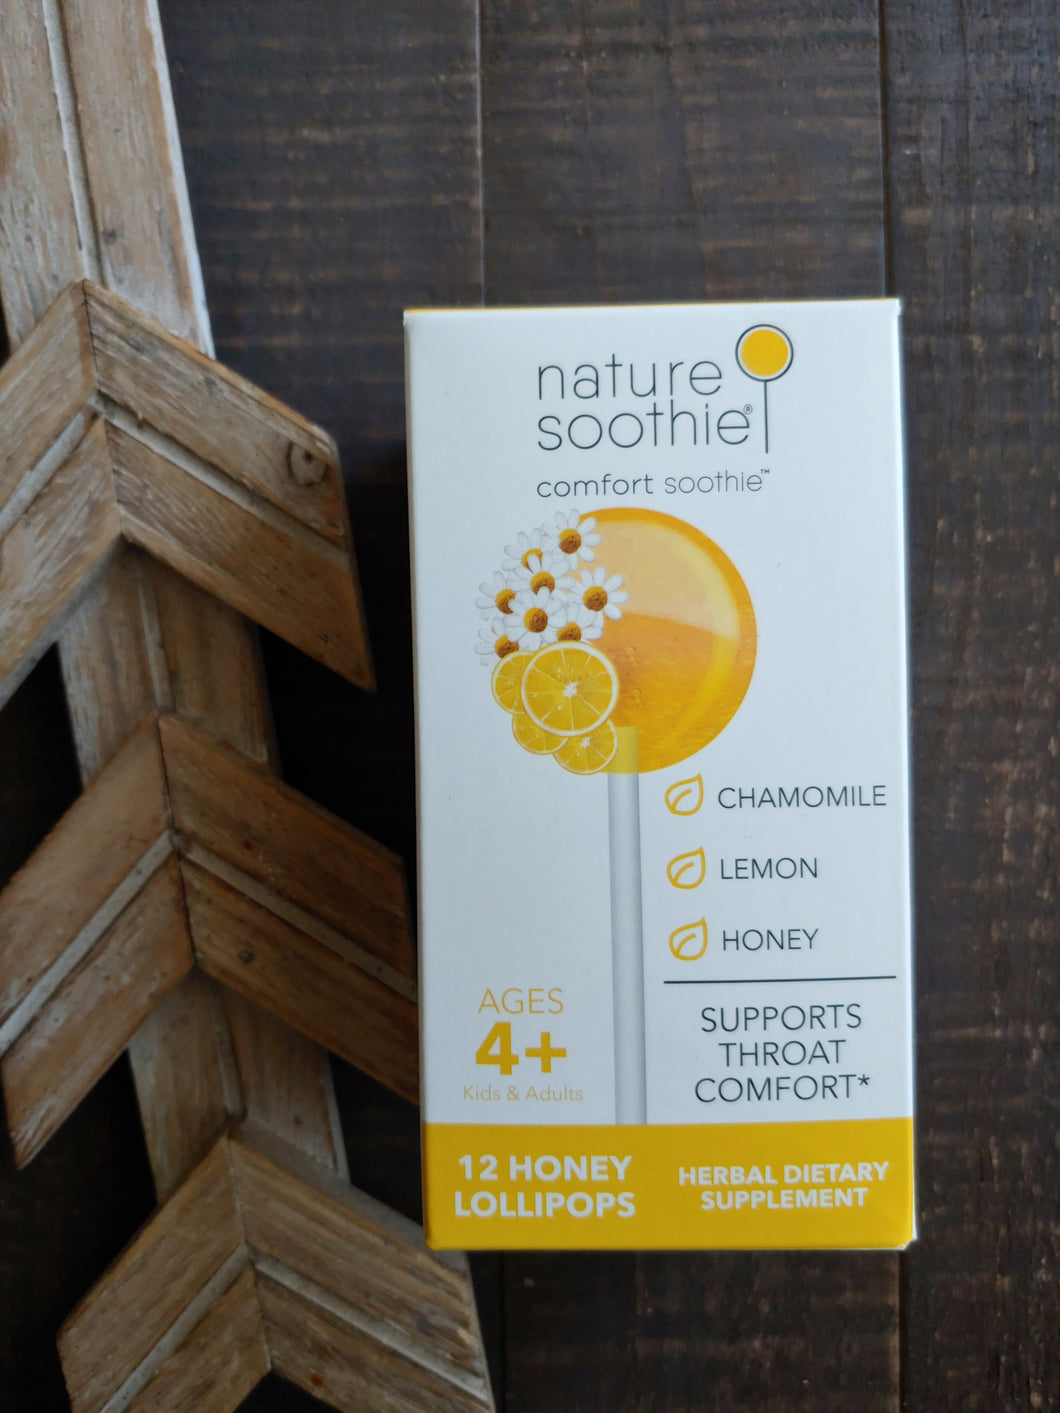 Nature Soothie ll Comfort Soothie Lollipops - SimplyGinger